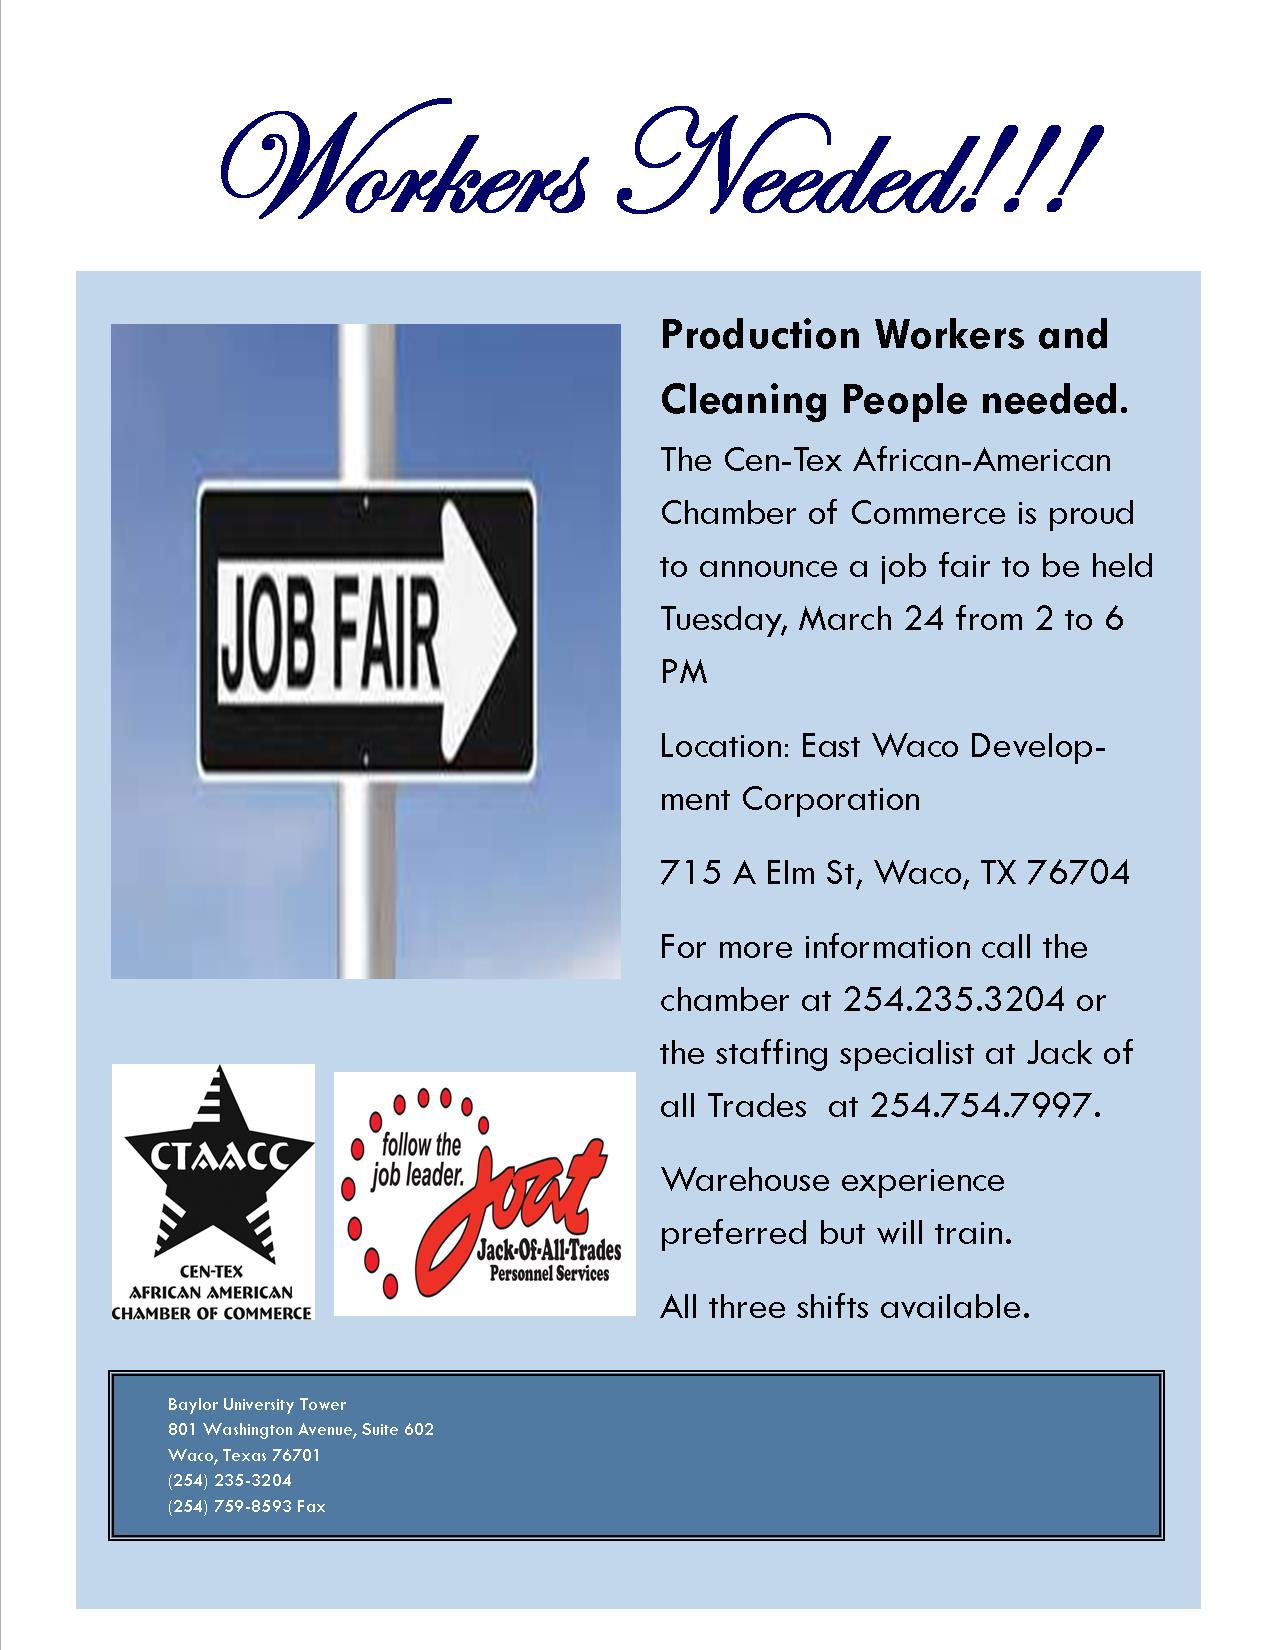 Job Fair in East Waco